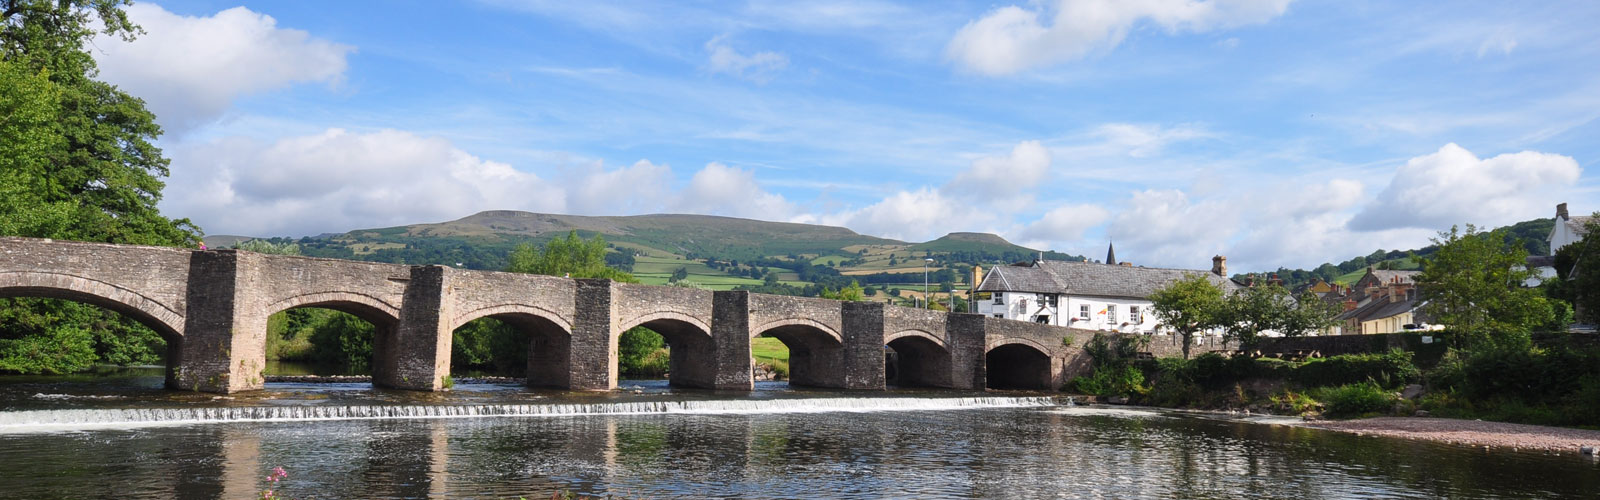 The bridge into nearby Crickhowell © Andy Dolman